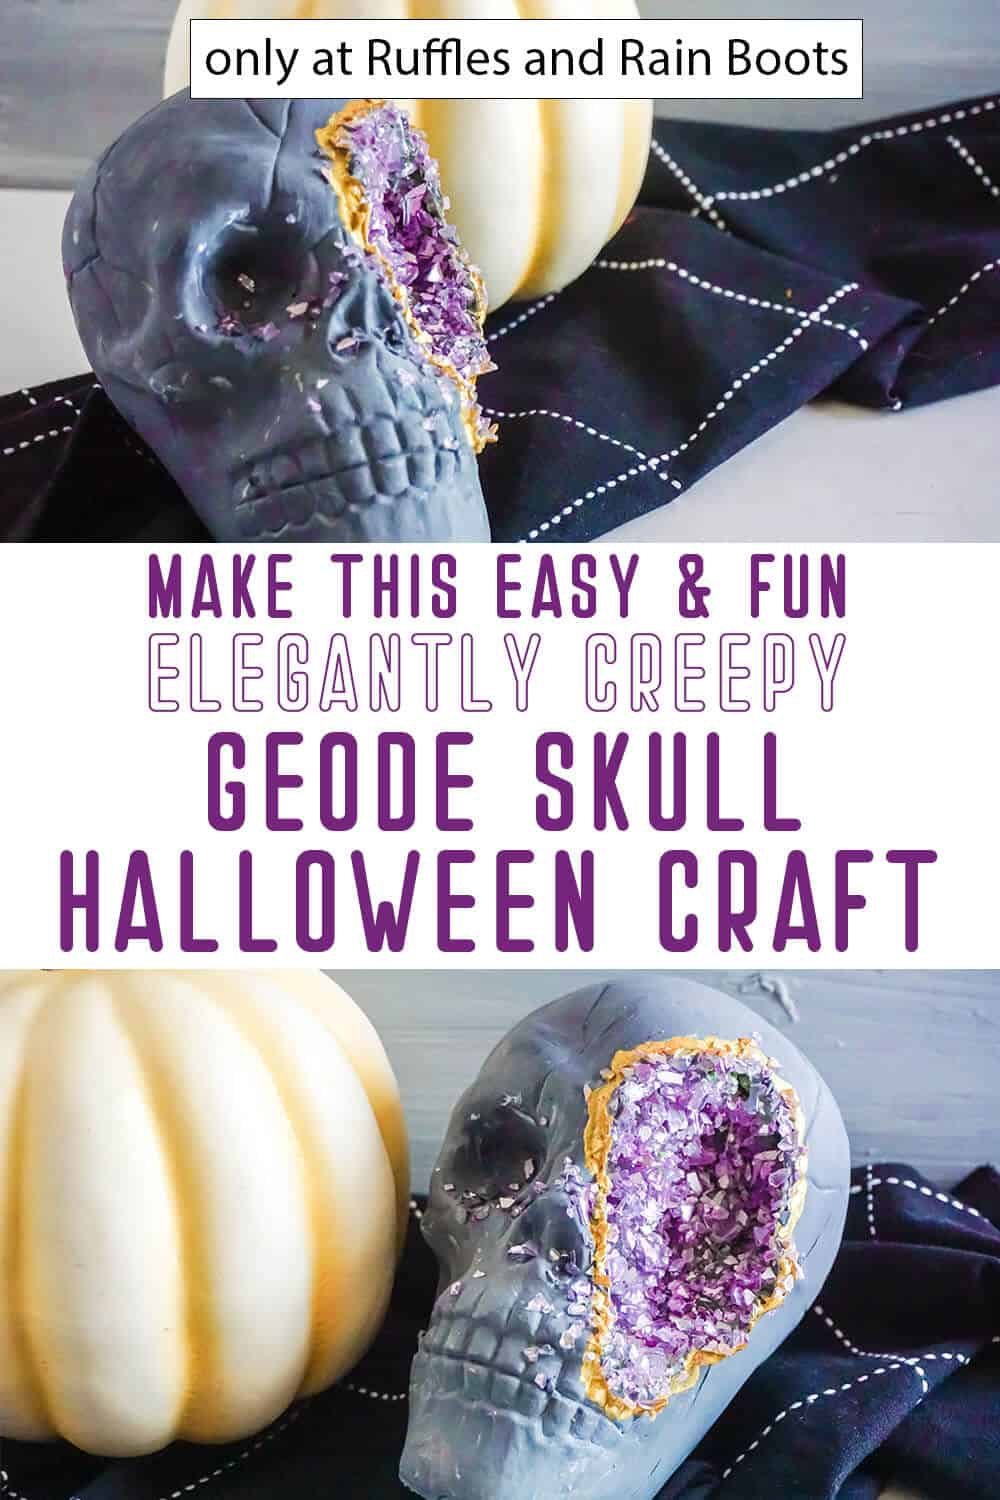 photo collage of skull geode halloween craft with text which reads make this easy and fun elegantly creepy geode skull halloween craft